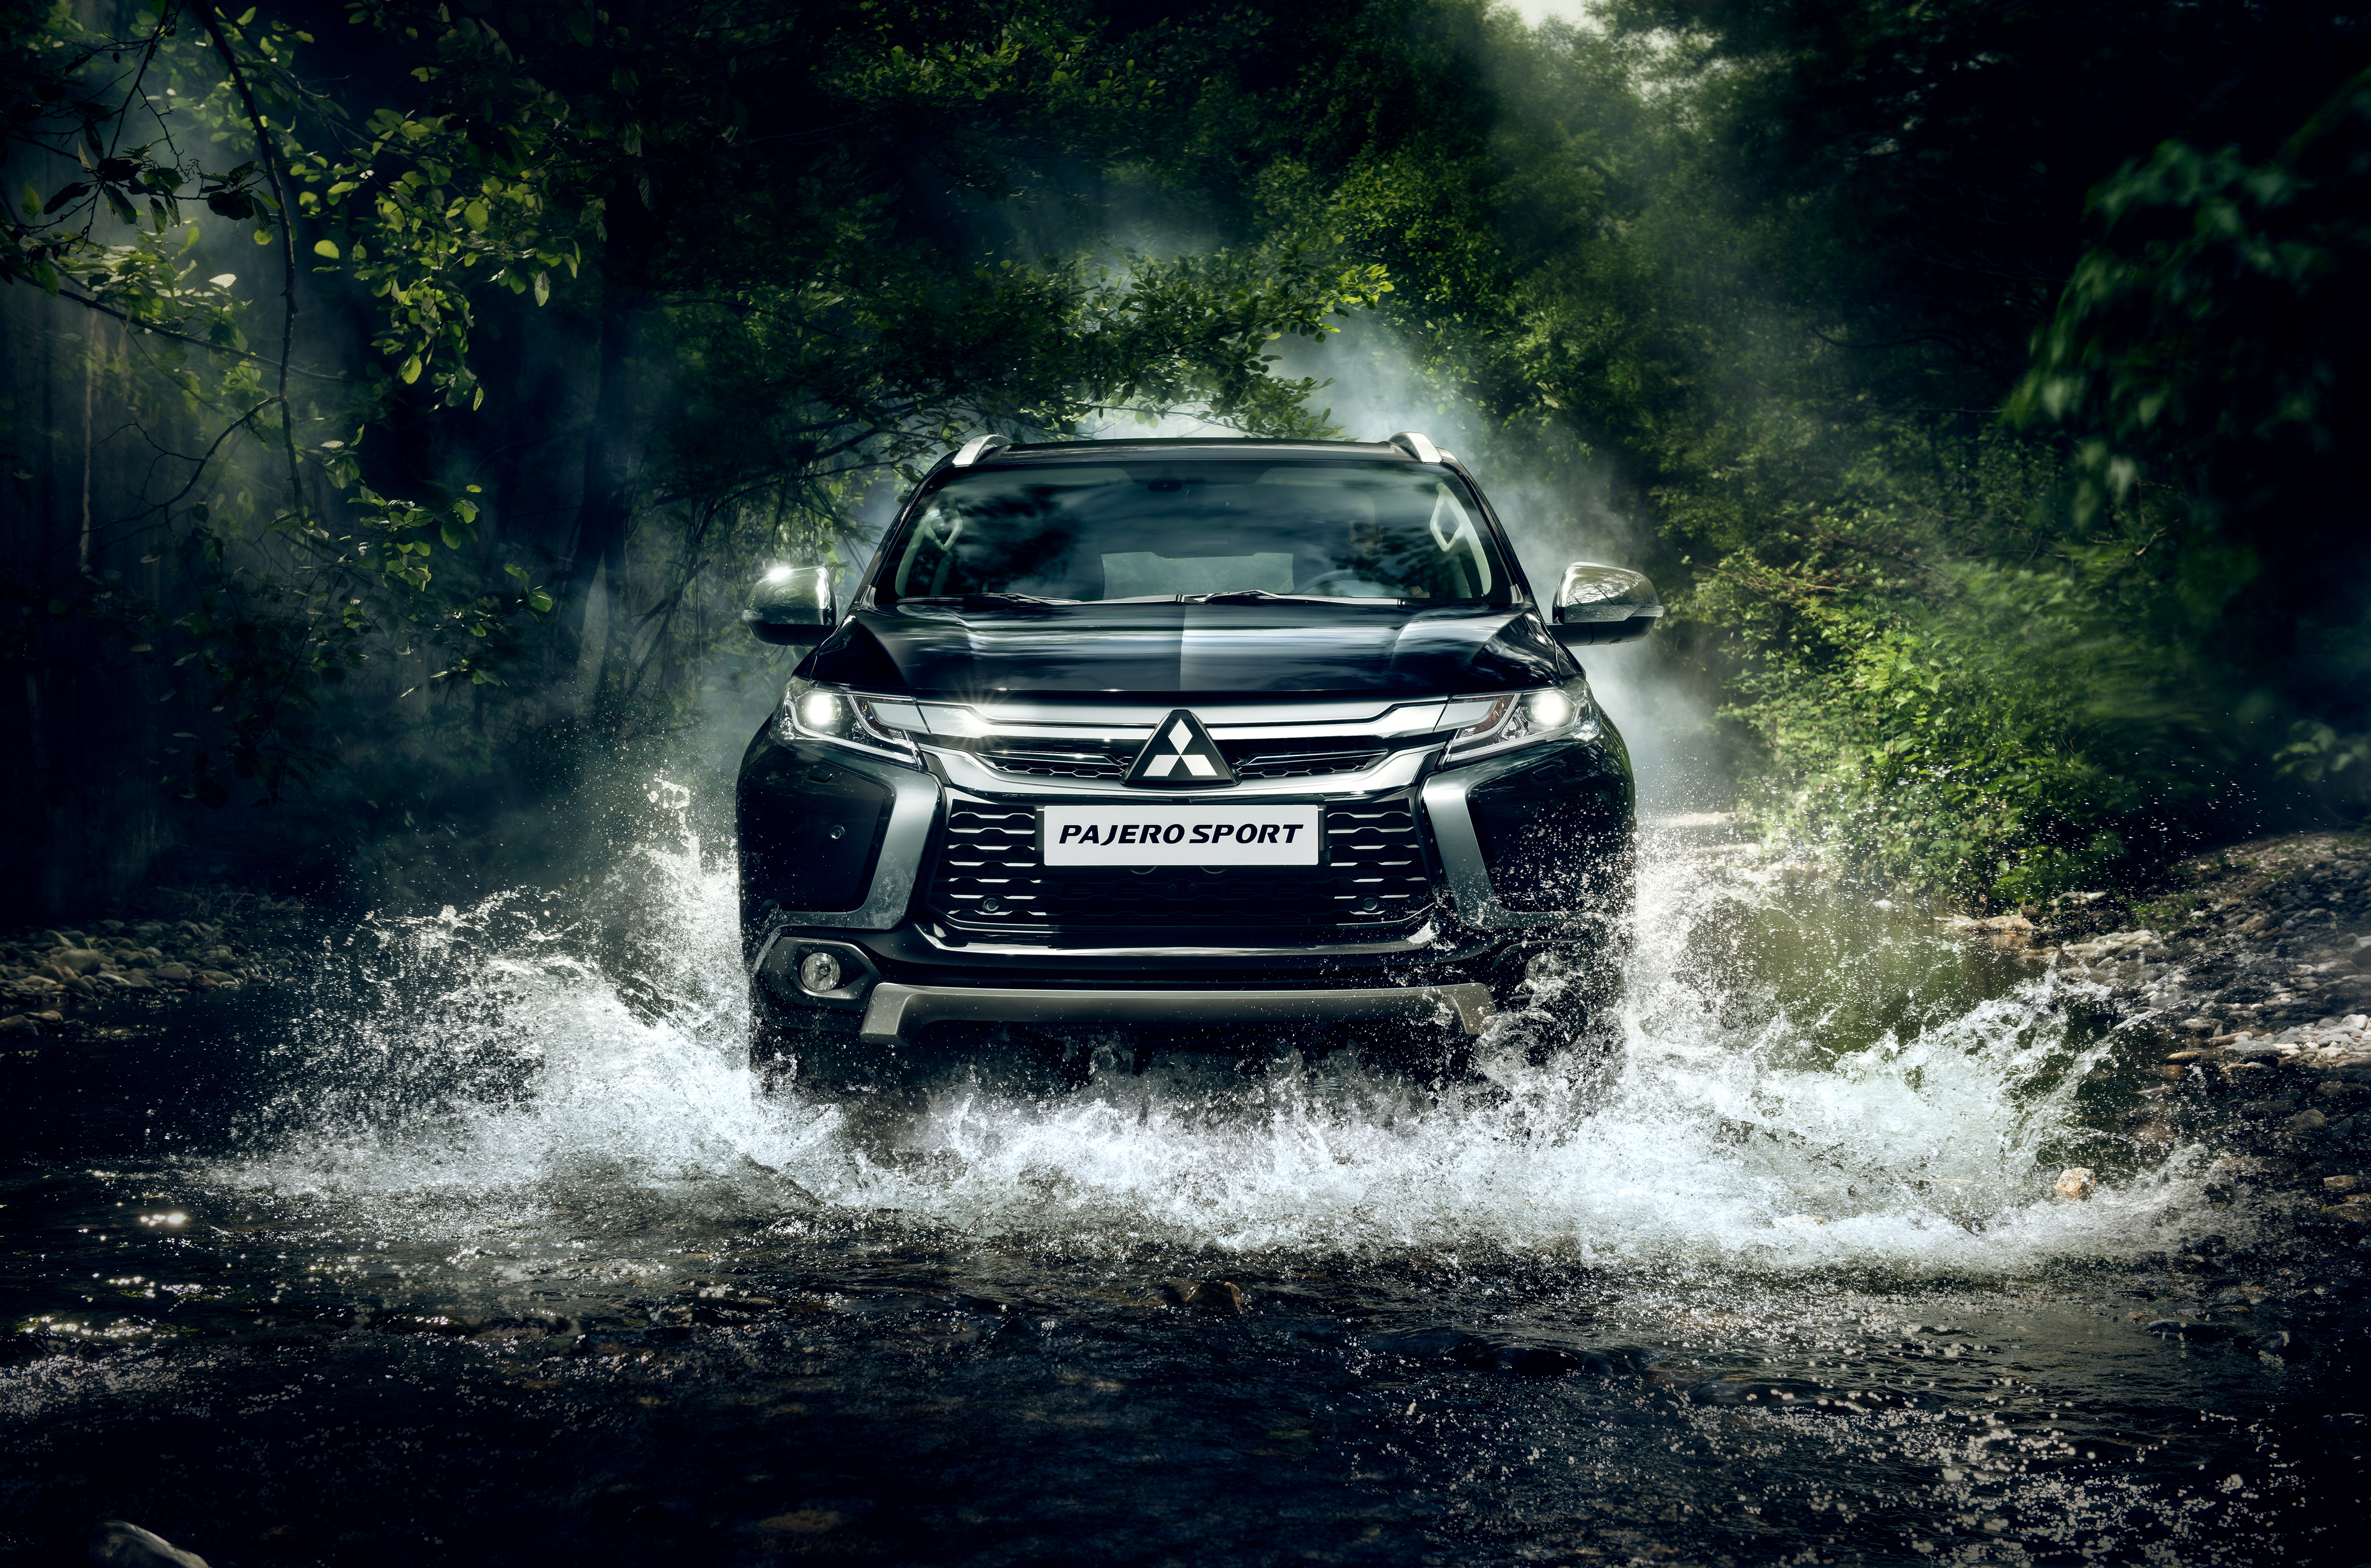 62441 download wallpaper Cars, Mitsubishi, Pajero, Rivers, Front View screensavers and pictures for free